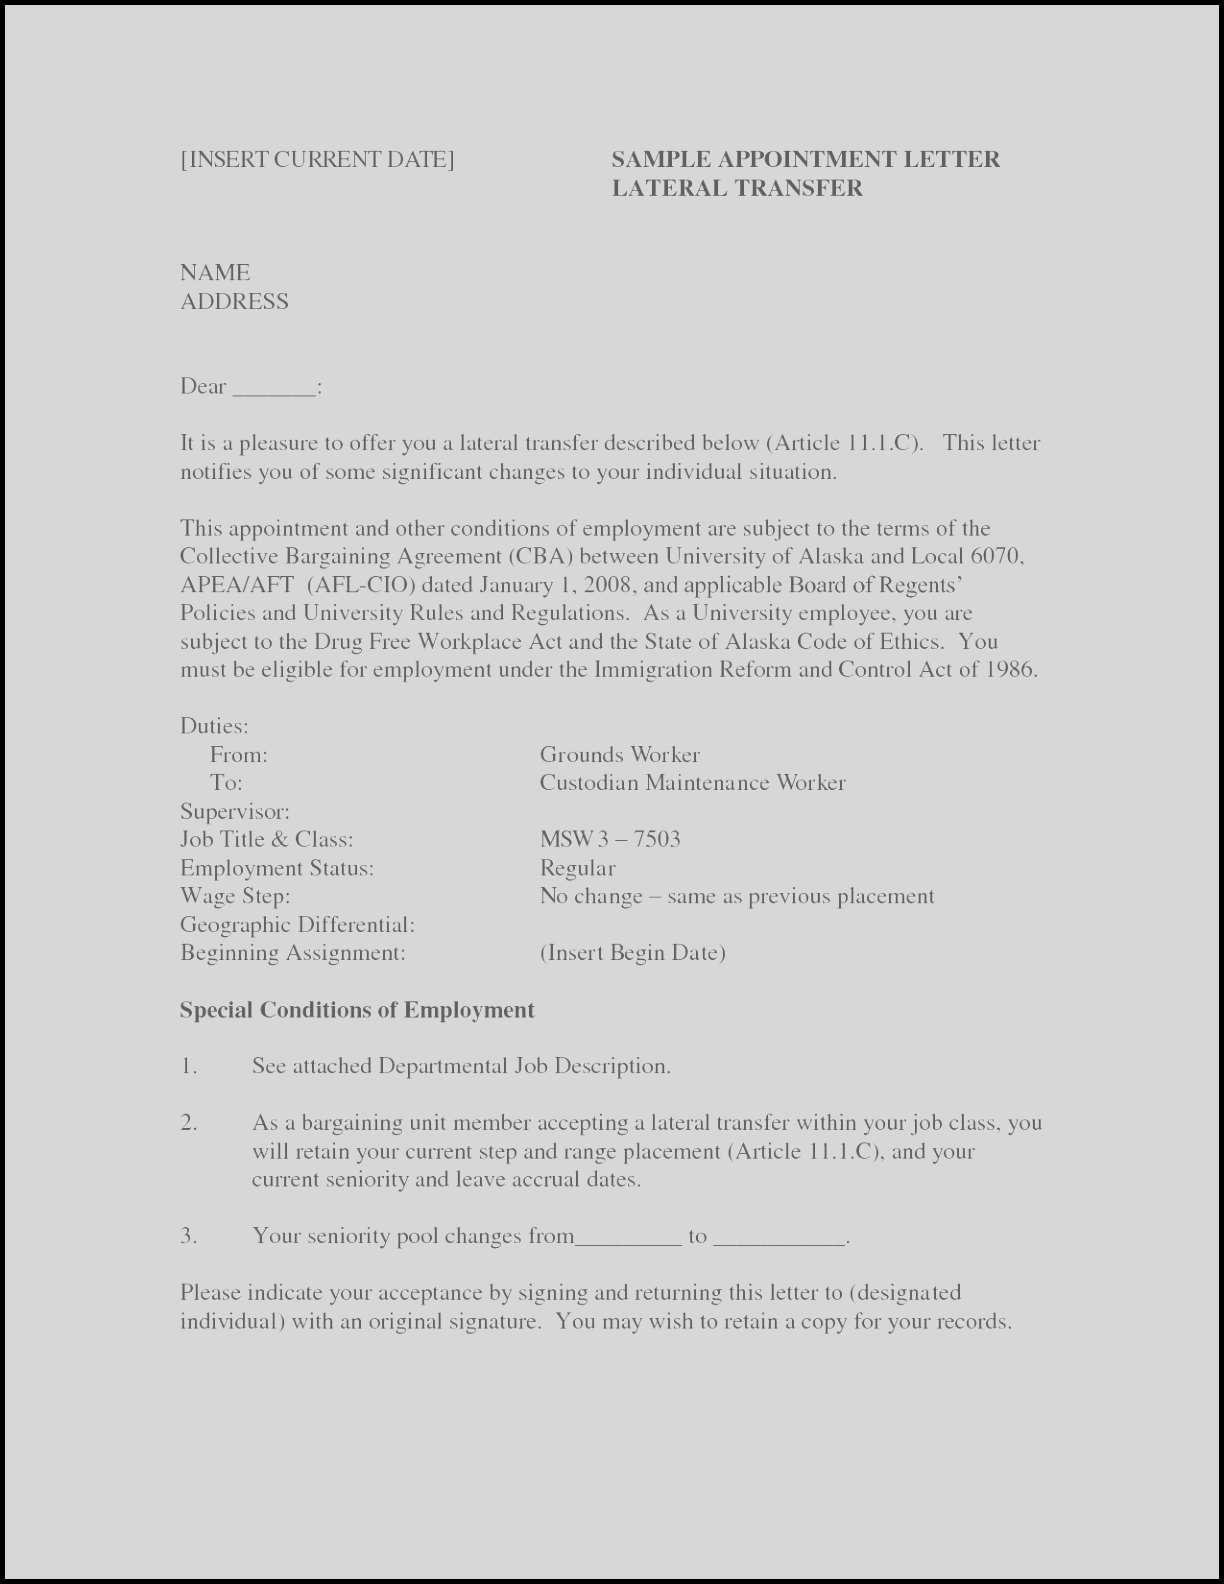 Resume Objective for Career Change Examples - Career Change Resume Sample Luxury Resume Doc Beautiful Resume